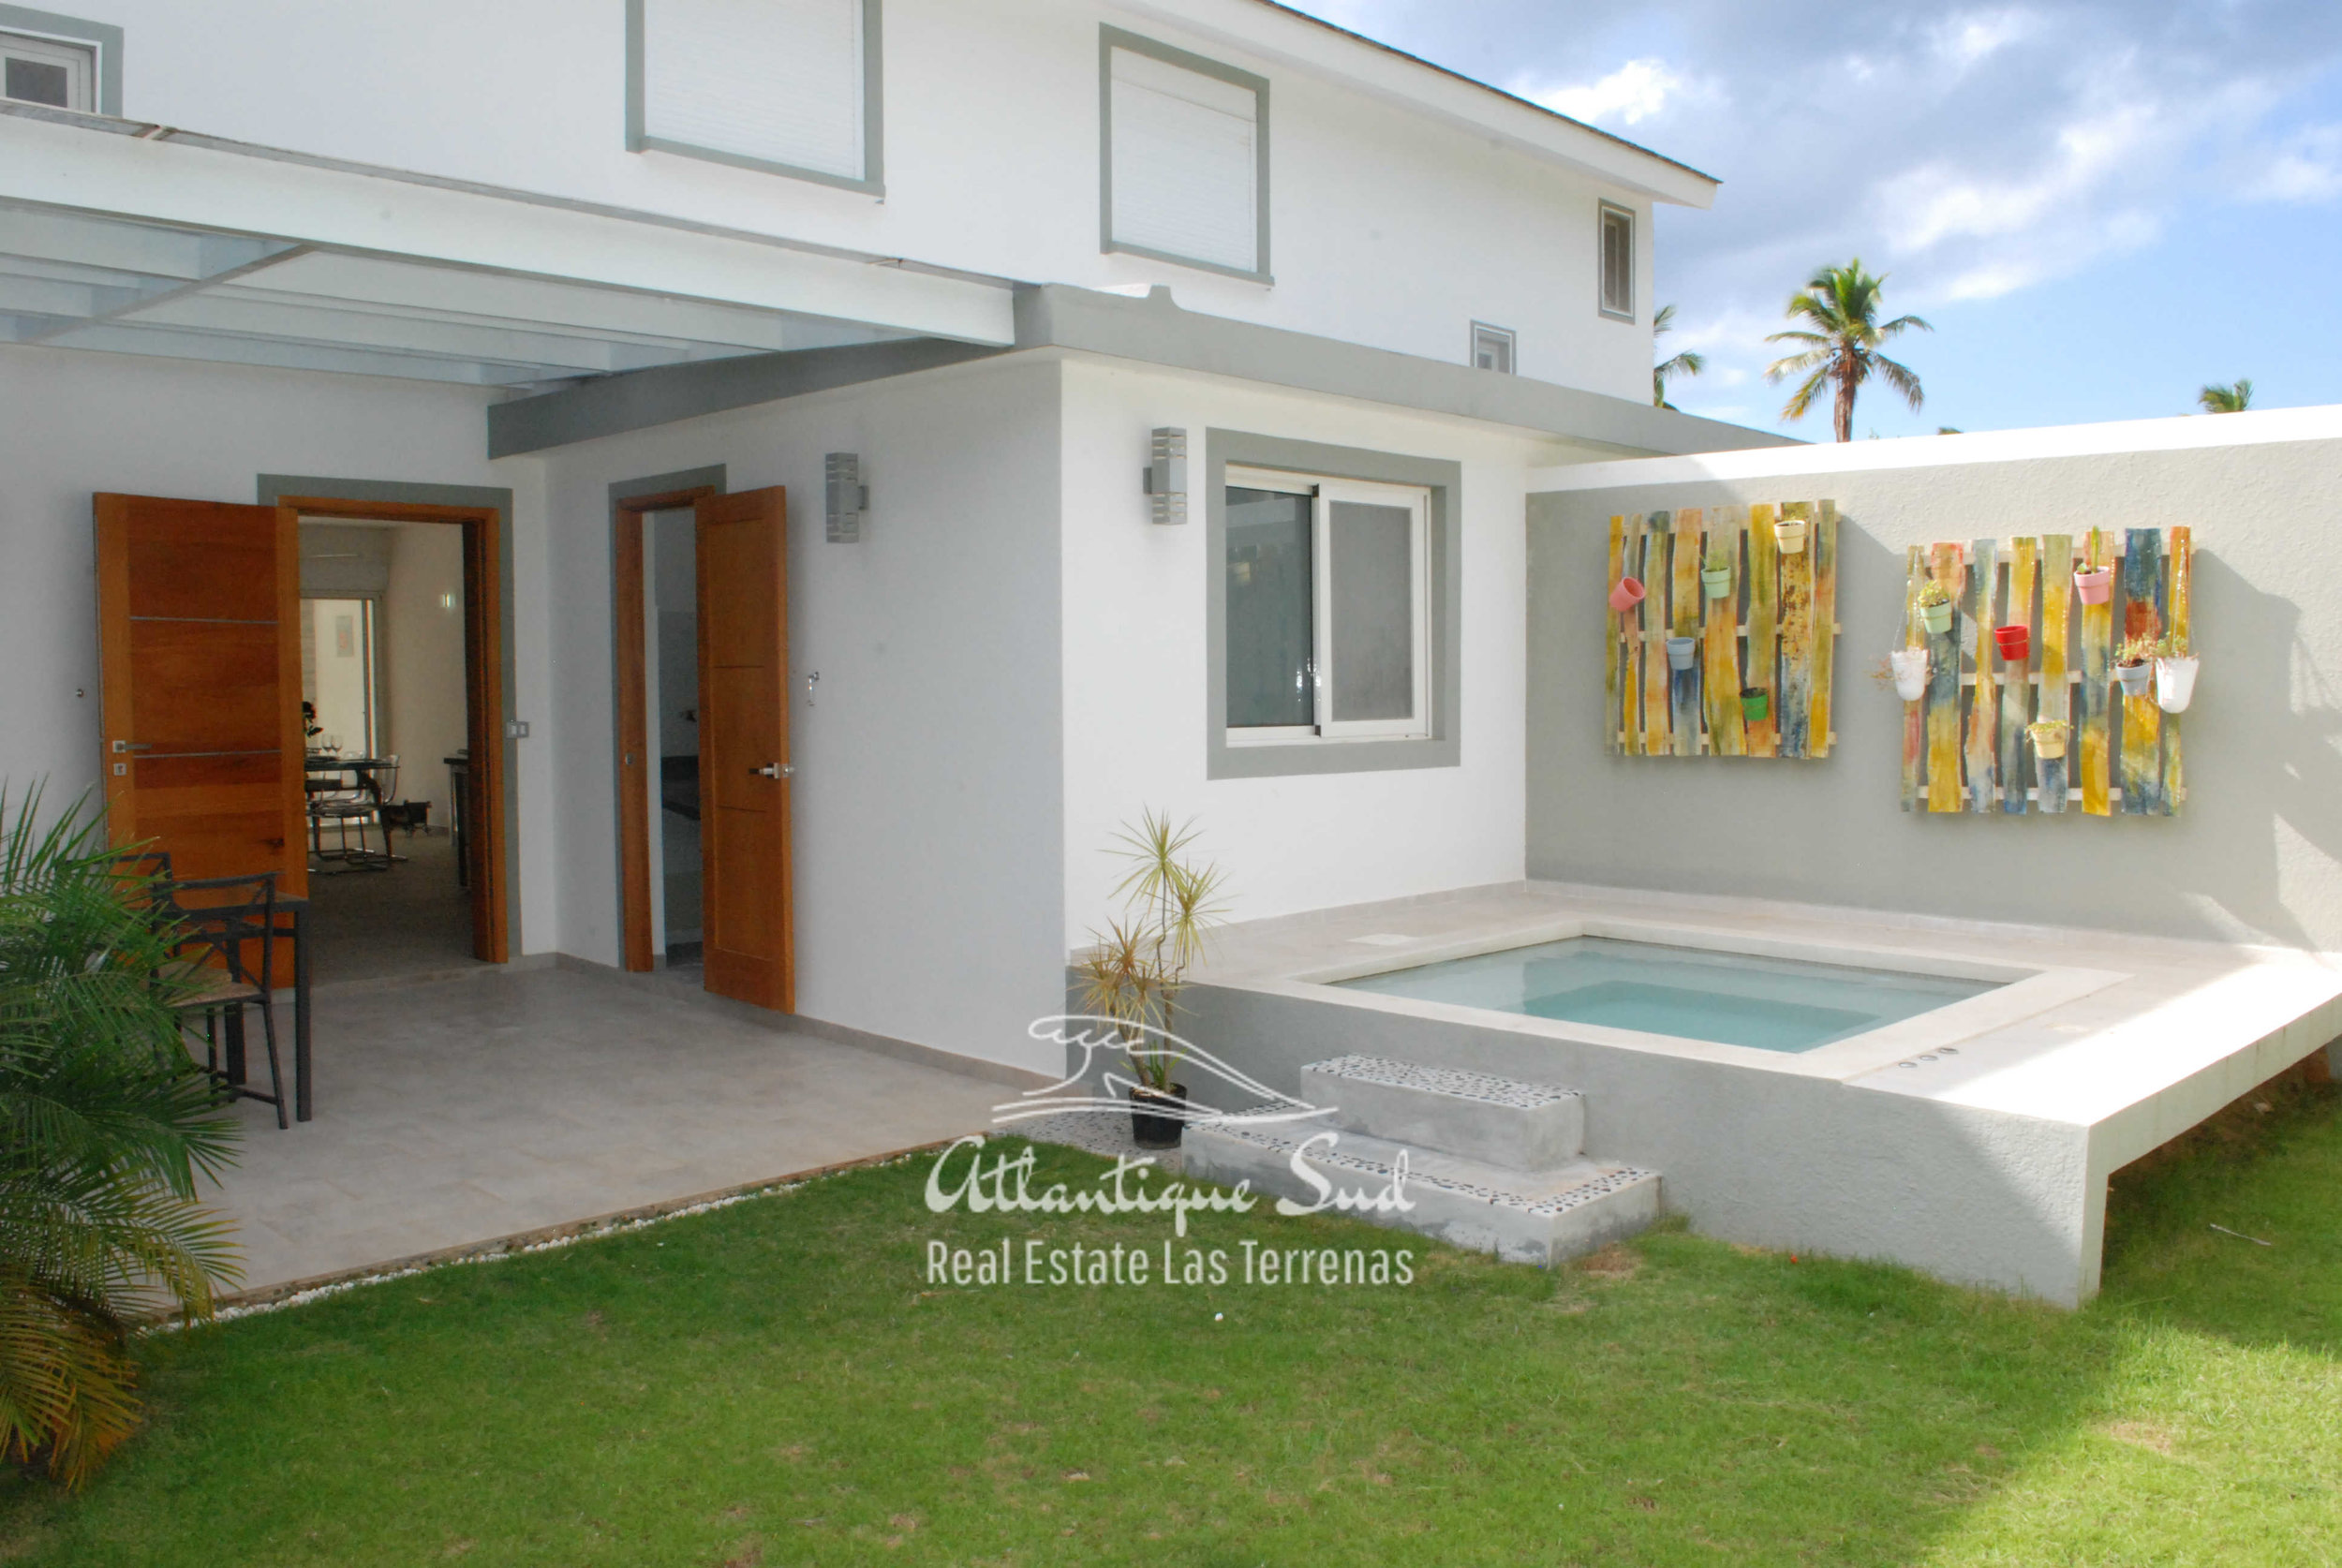 New project of commodious townhouses Real Estate Las Terrenas Atlantique Sud9.jpg